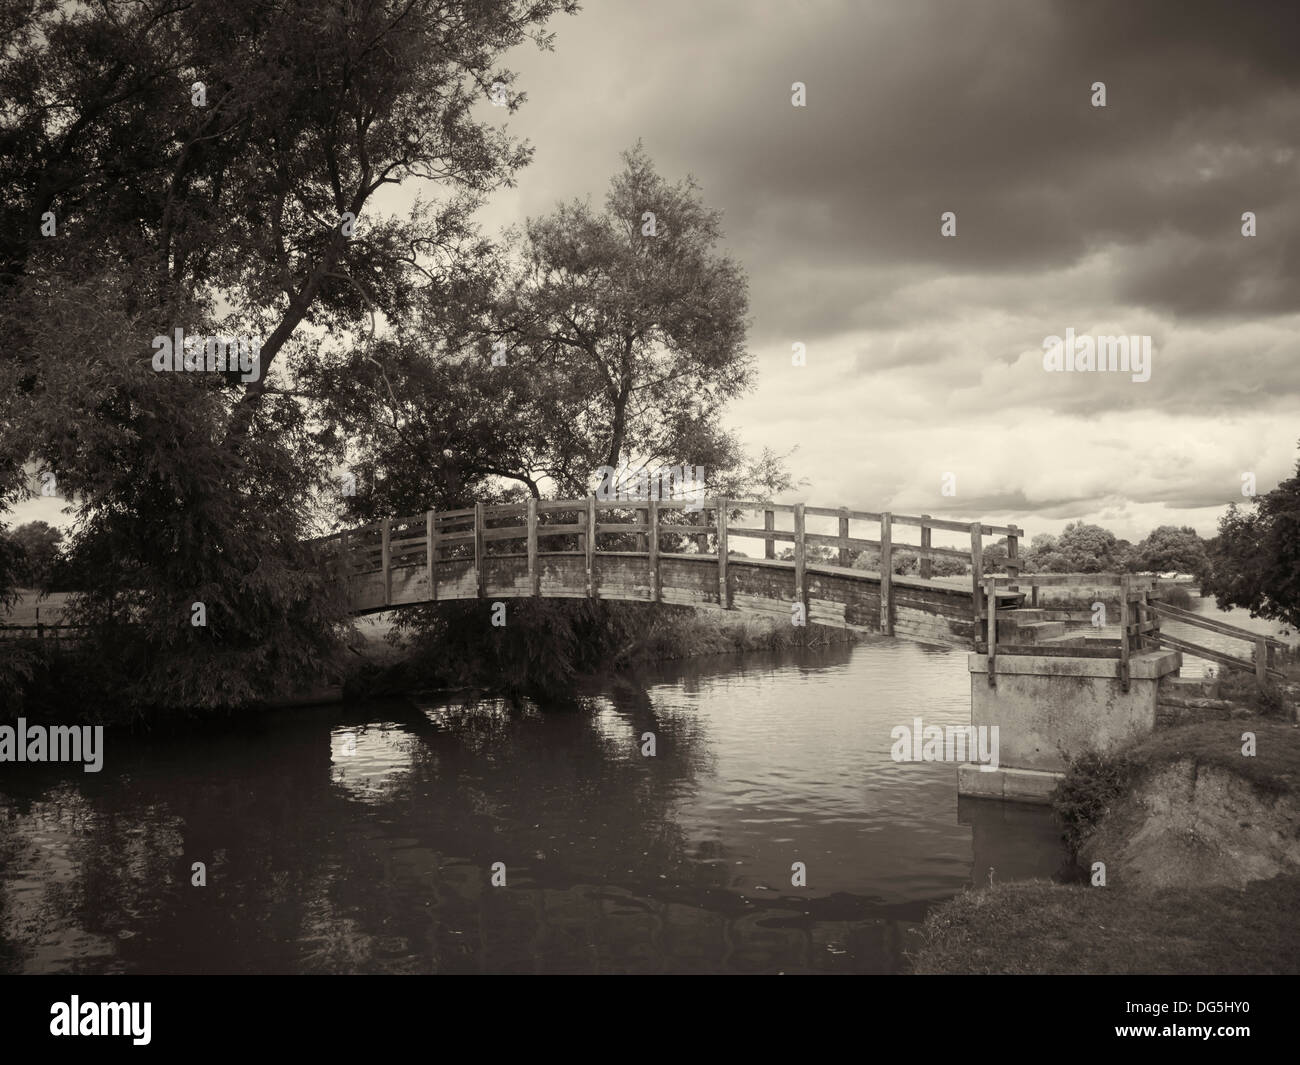 Footbridge over the River Thames, Lechlade, England - Stock Image